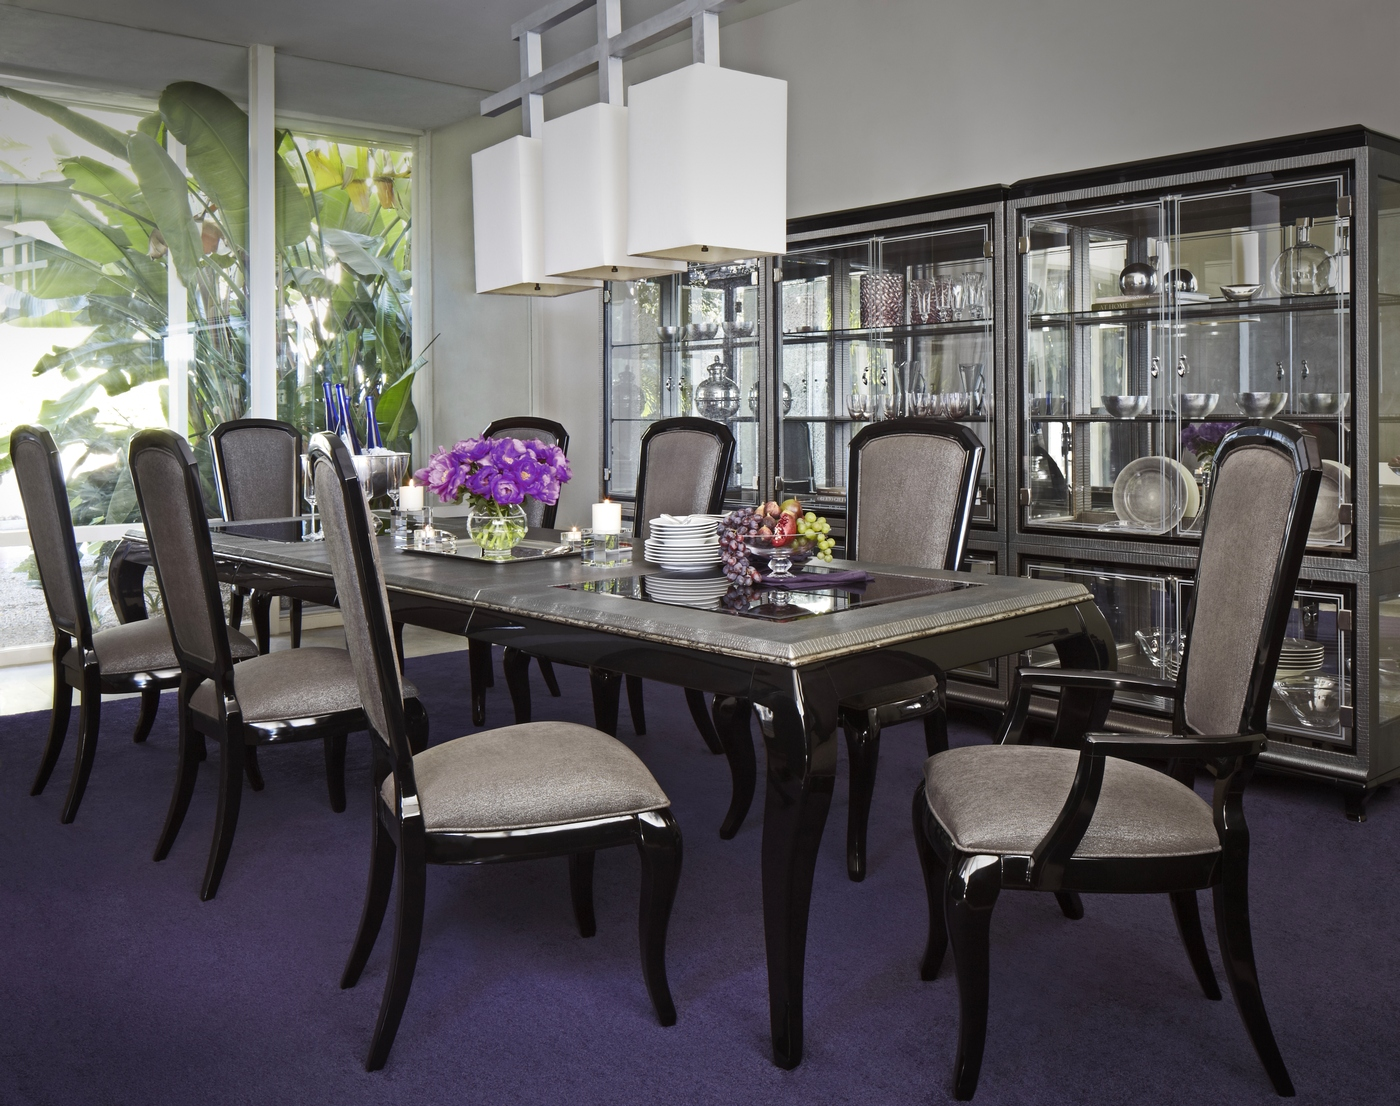 Details about New Michael Amini After Eight 5 Piece Formal Dining Room Set  Black Onyx by AICO